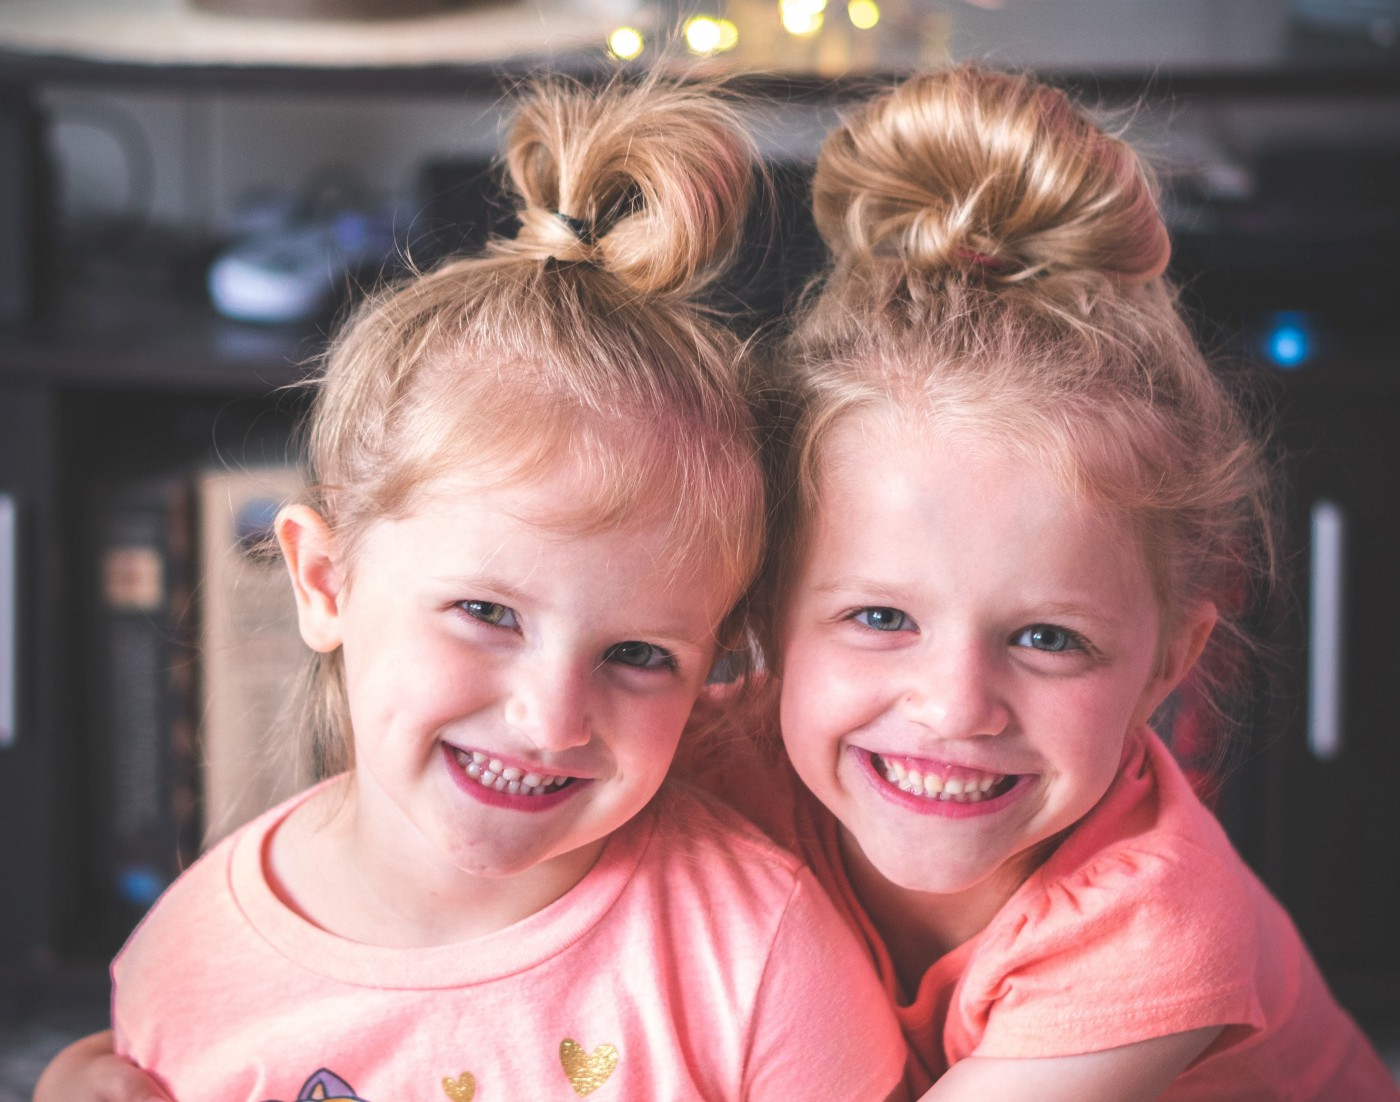 Photo of 2 smiling young girls.